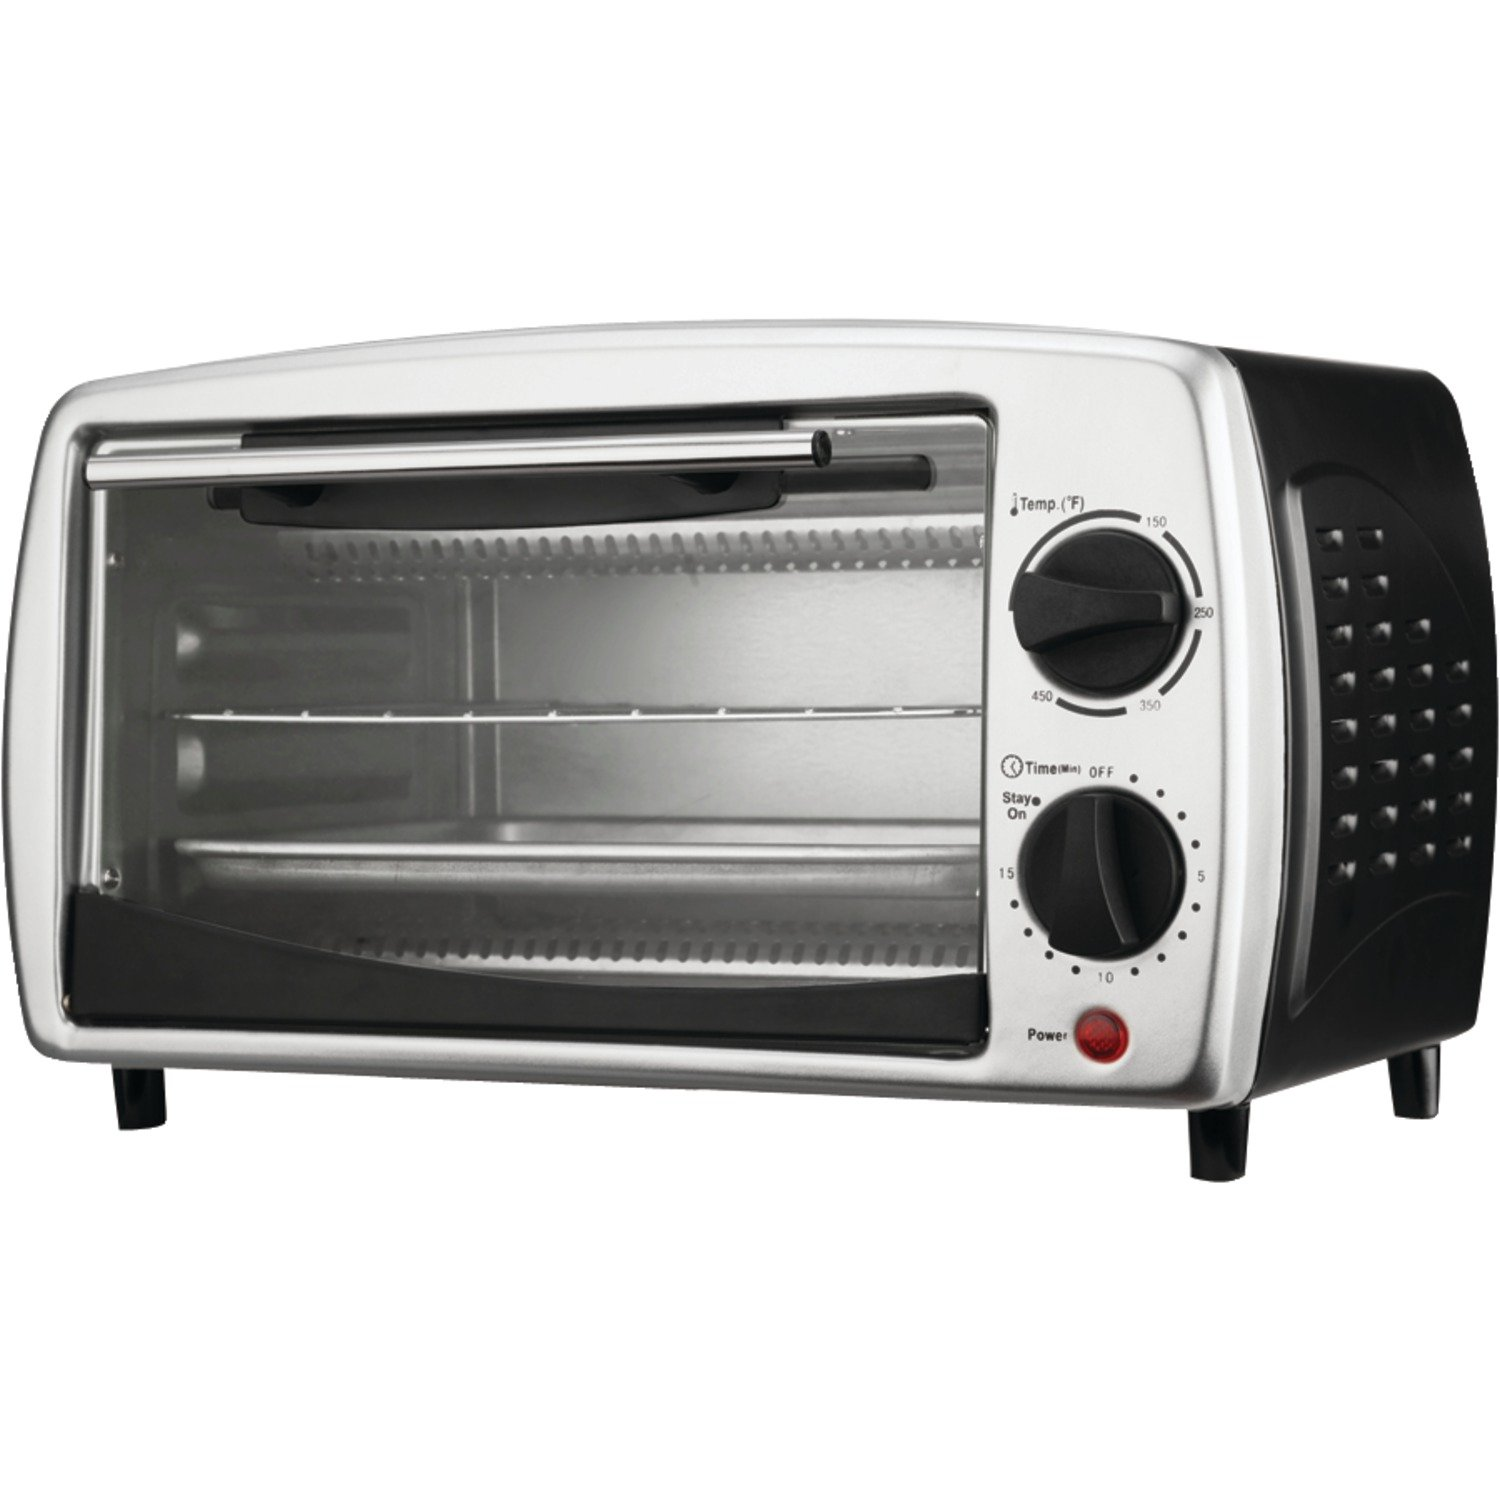 Brentwood TS-345B Stainless Steel 4 Slice Toaster Oven, Black